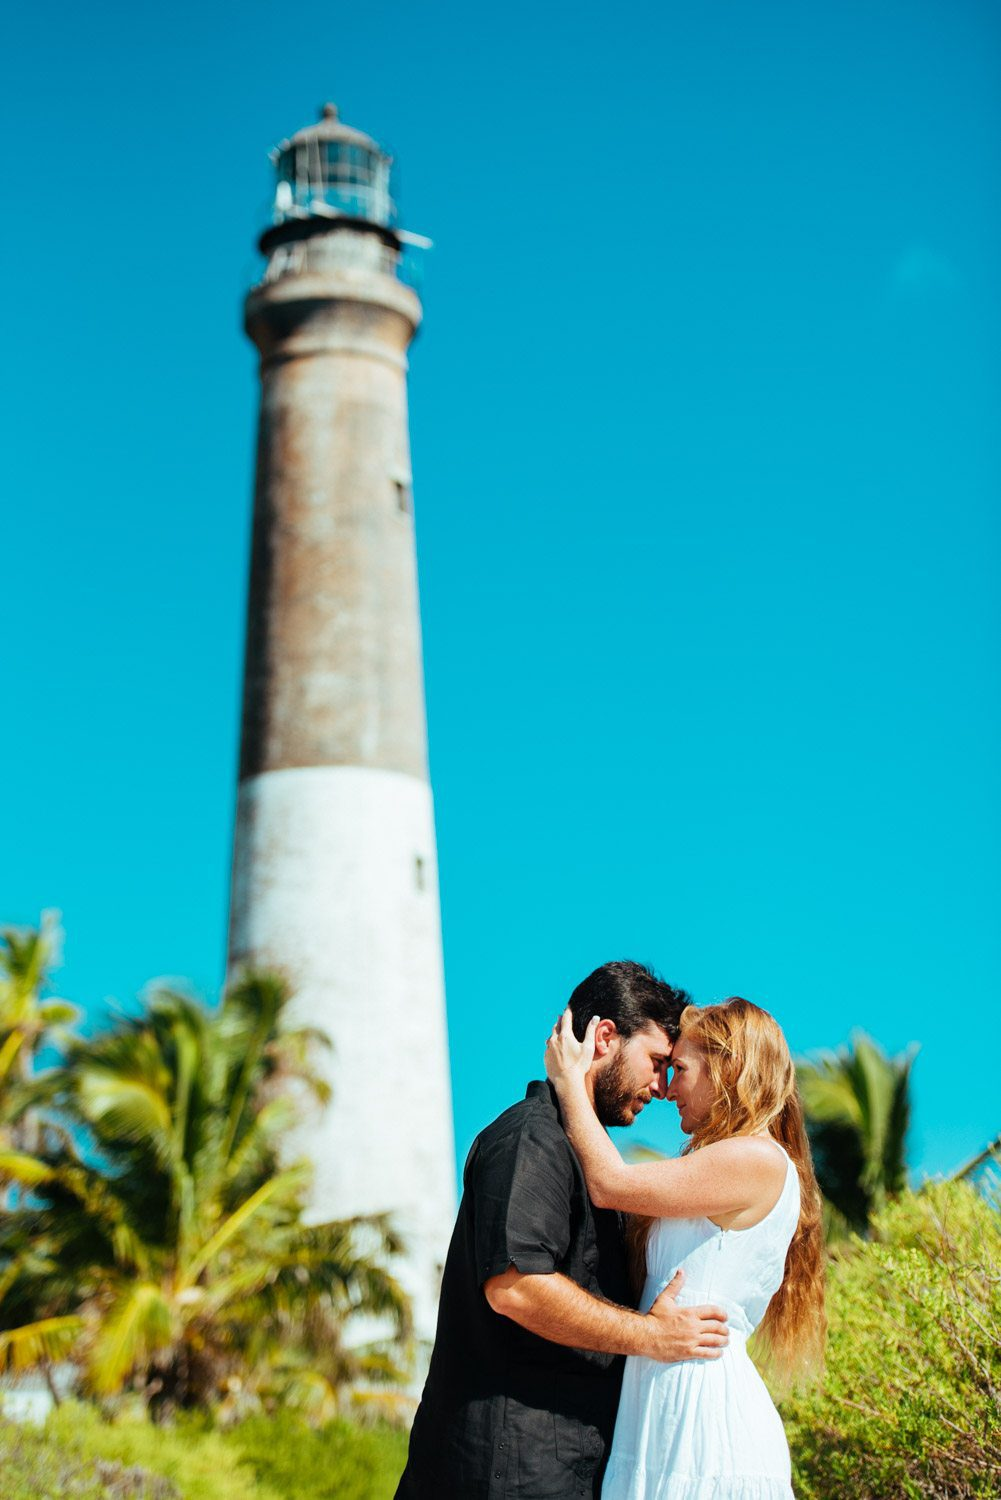 Katherine Oscar Engagement Photos Dry Tortugas 23 - Island Adventure Engagement Session - Dry Tortugas National Park and Fort Jefferson